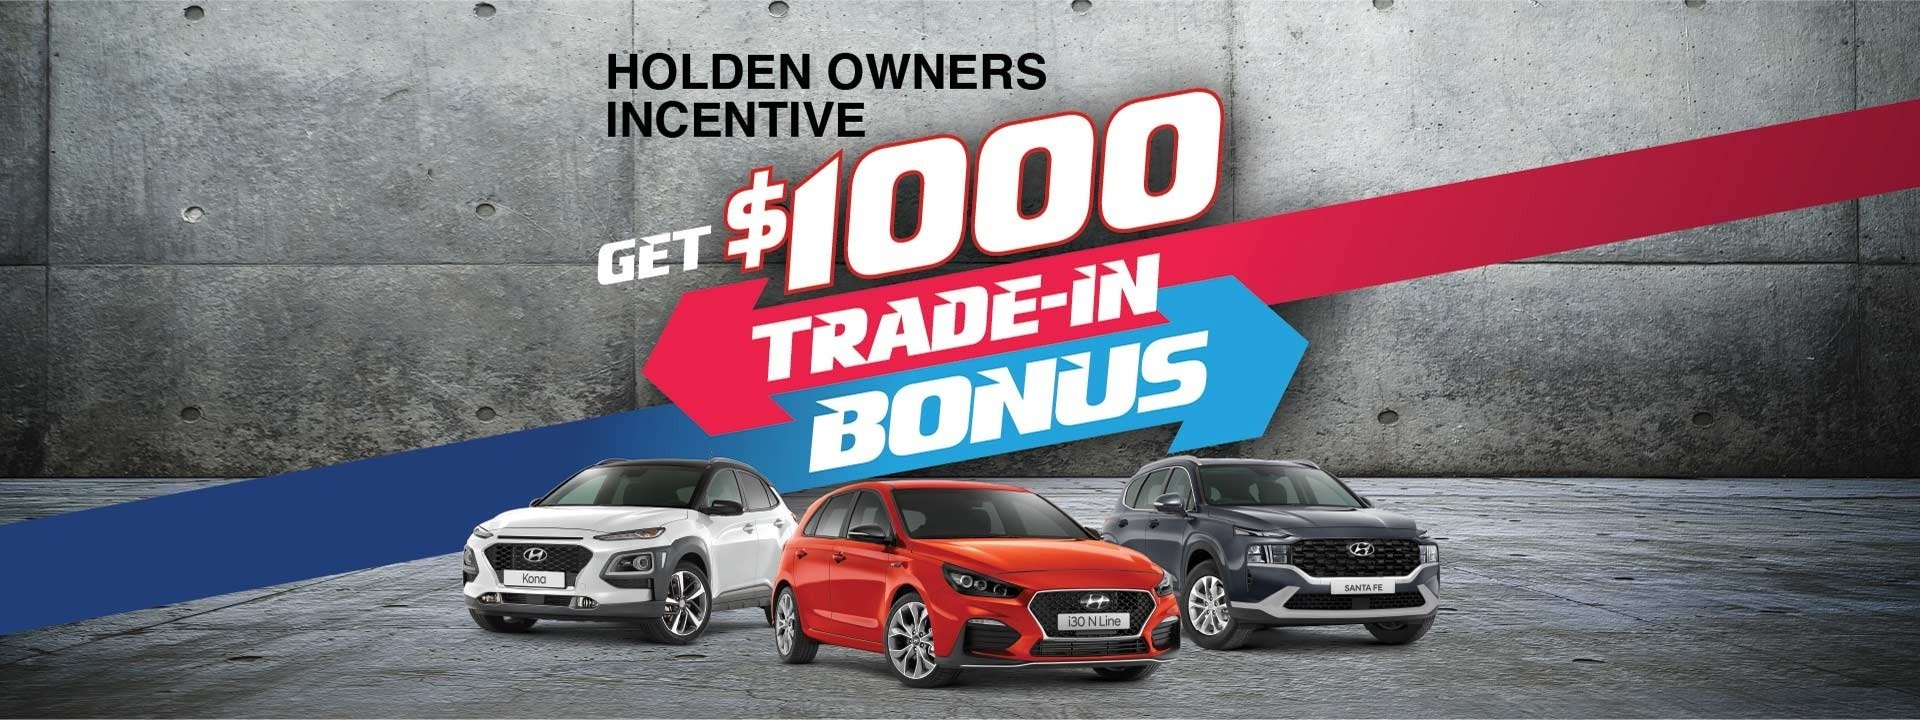 Steinborner Hyundai | Holden Owners Incentive Special Offer